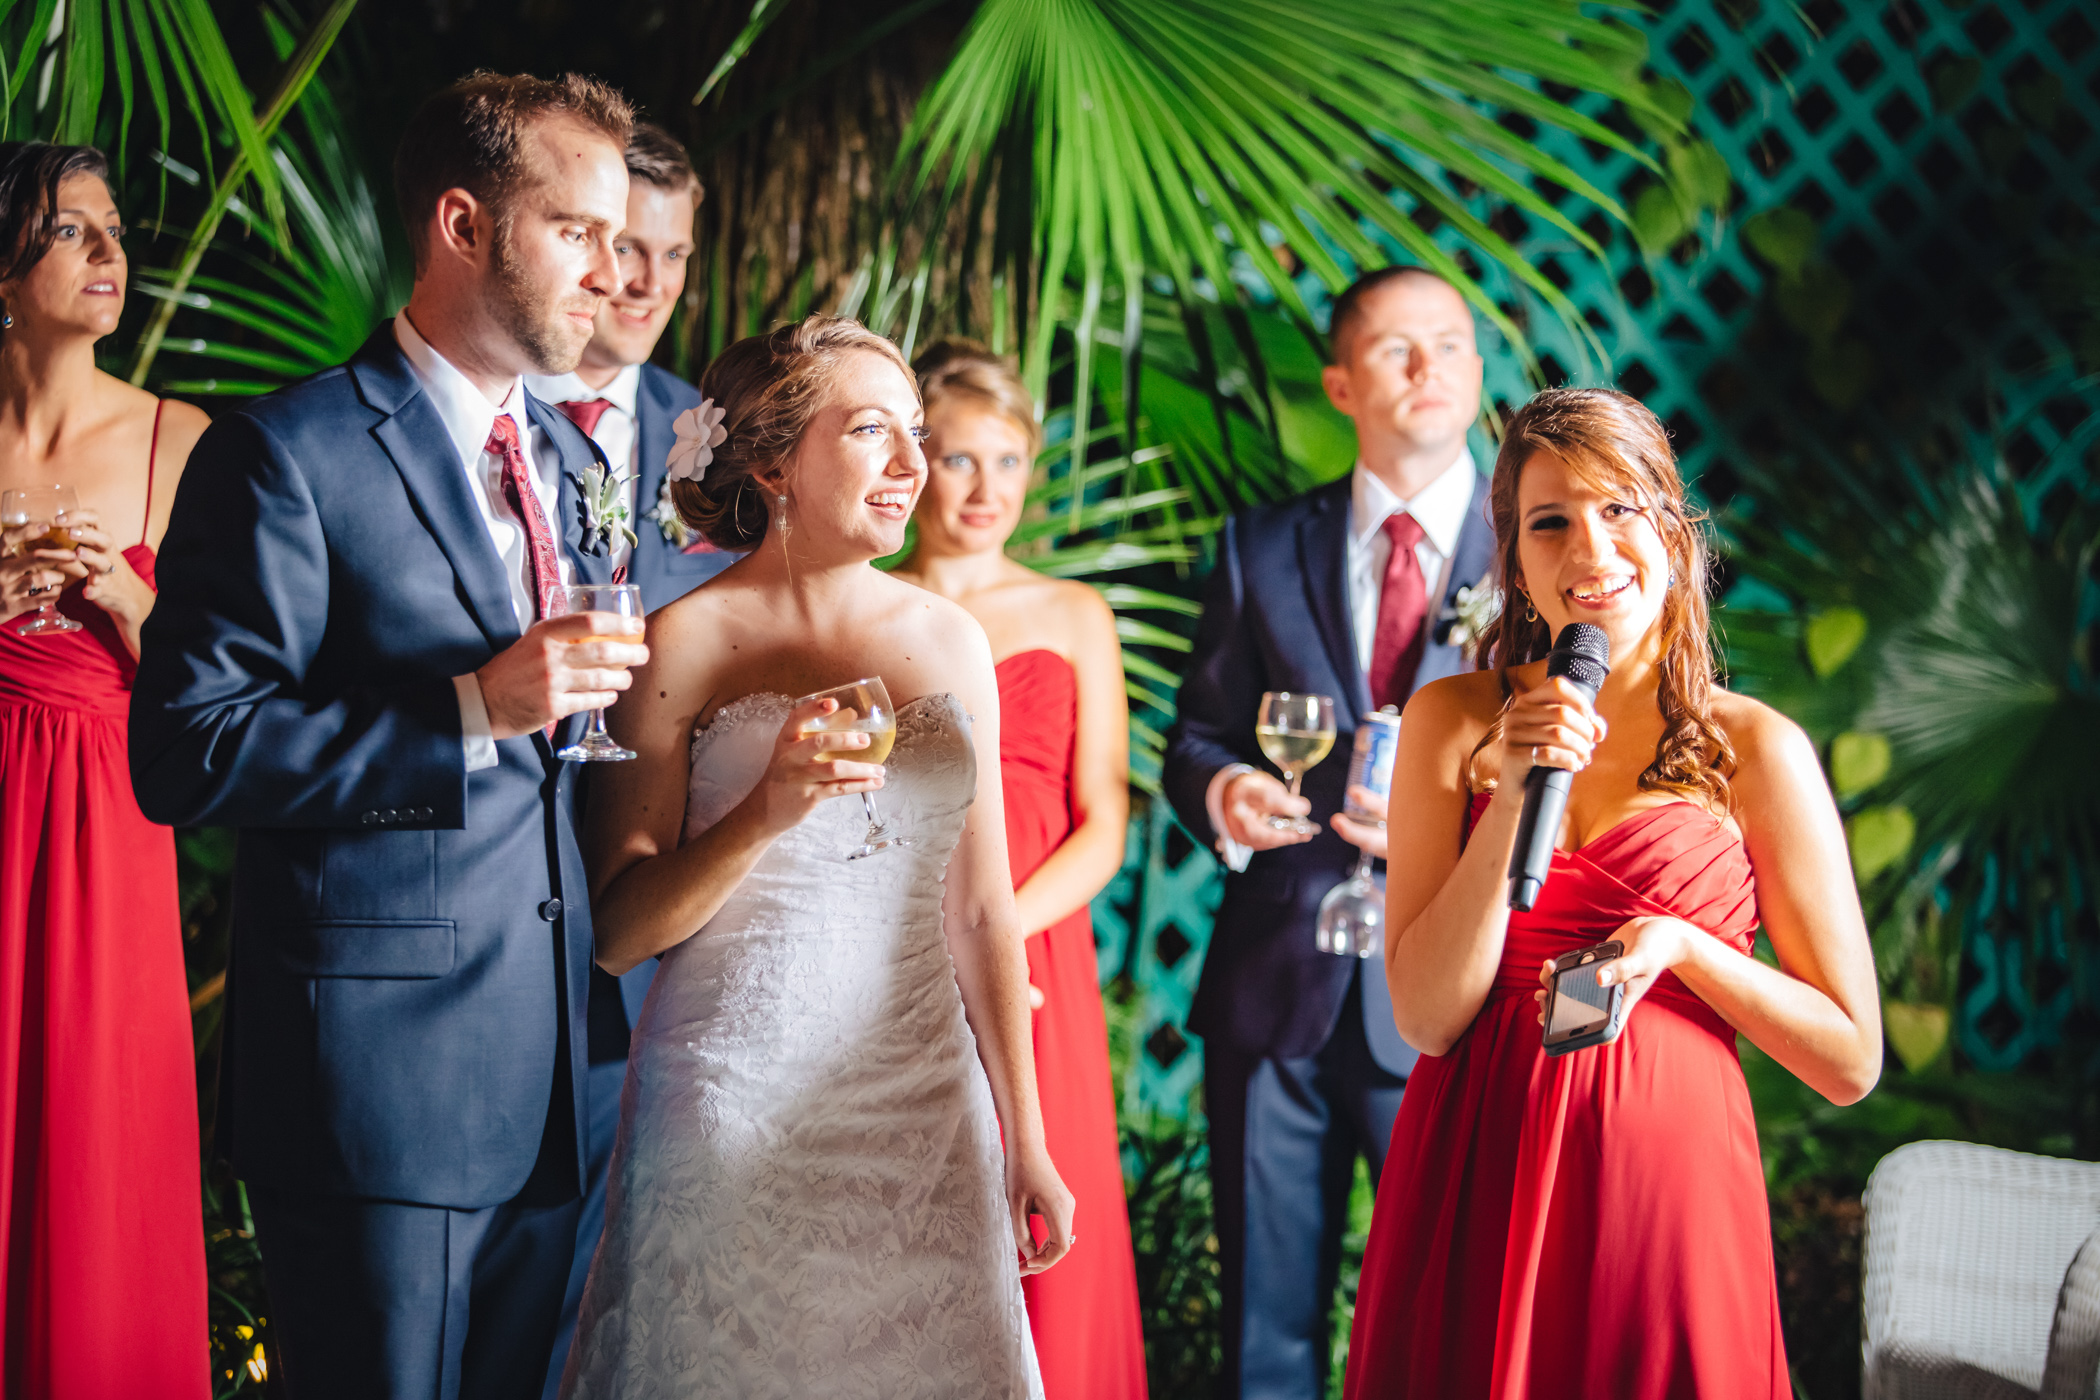 Downtown Orlando Wedding at Lake Lucerne Christmas Theme Red Dress Navy Suits 151.jpg